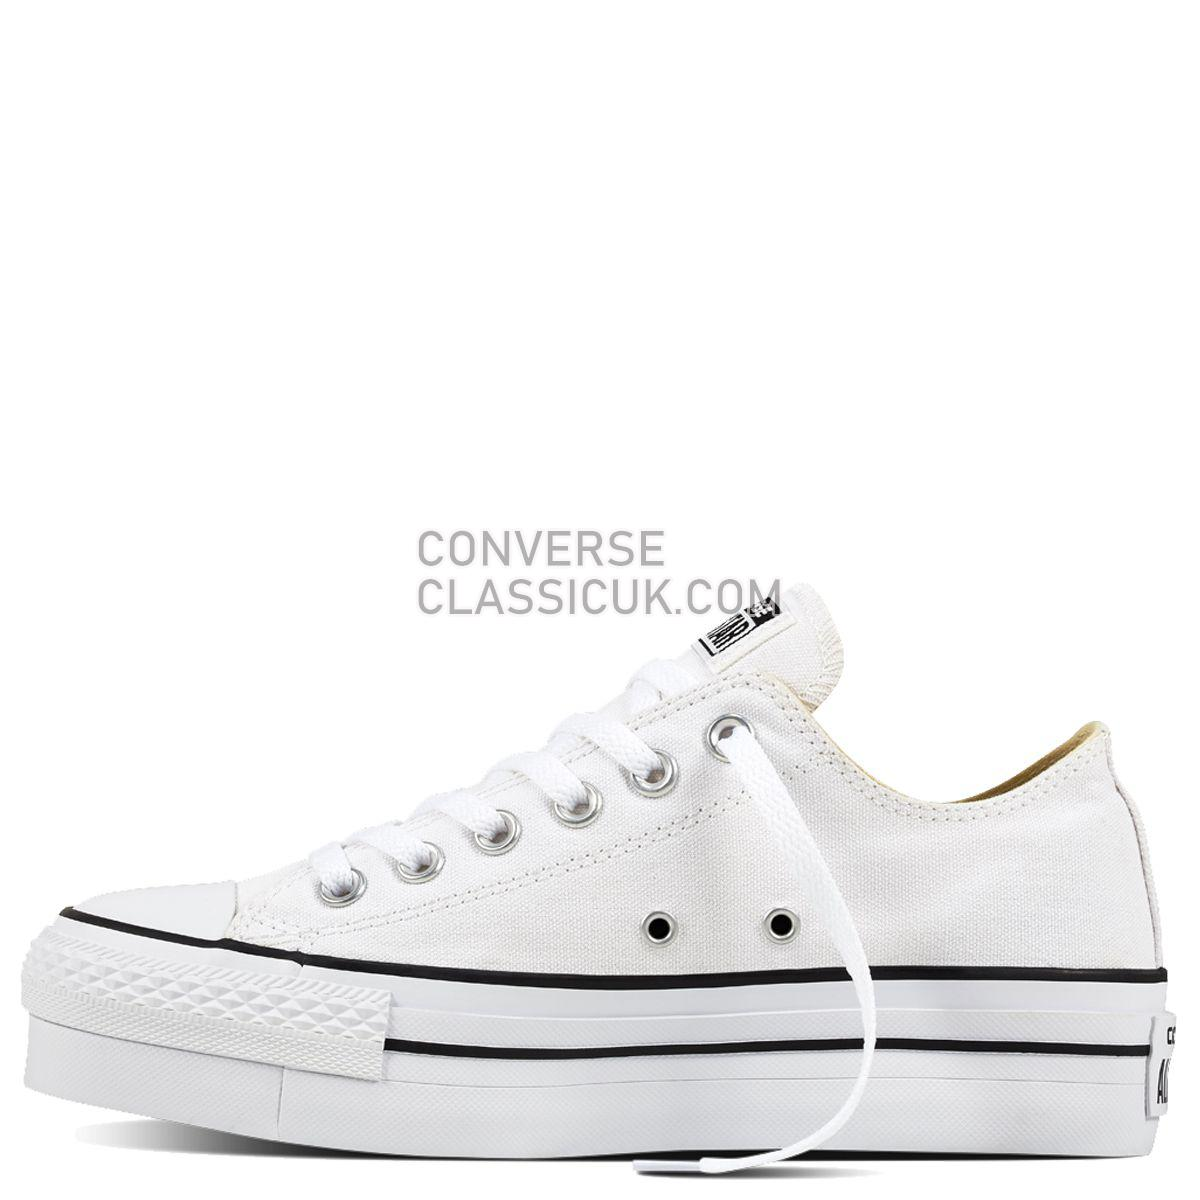 Converse Chuck Taylor All Star Lift Low Top White Womens 560251 White/Black/White Shoes